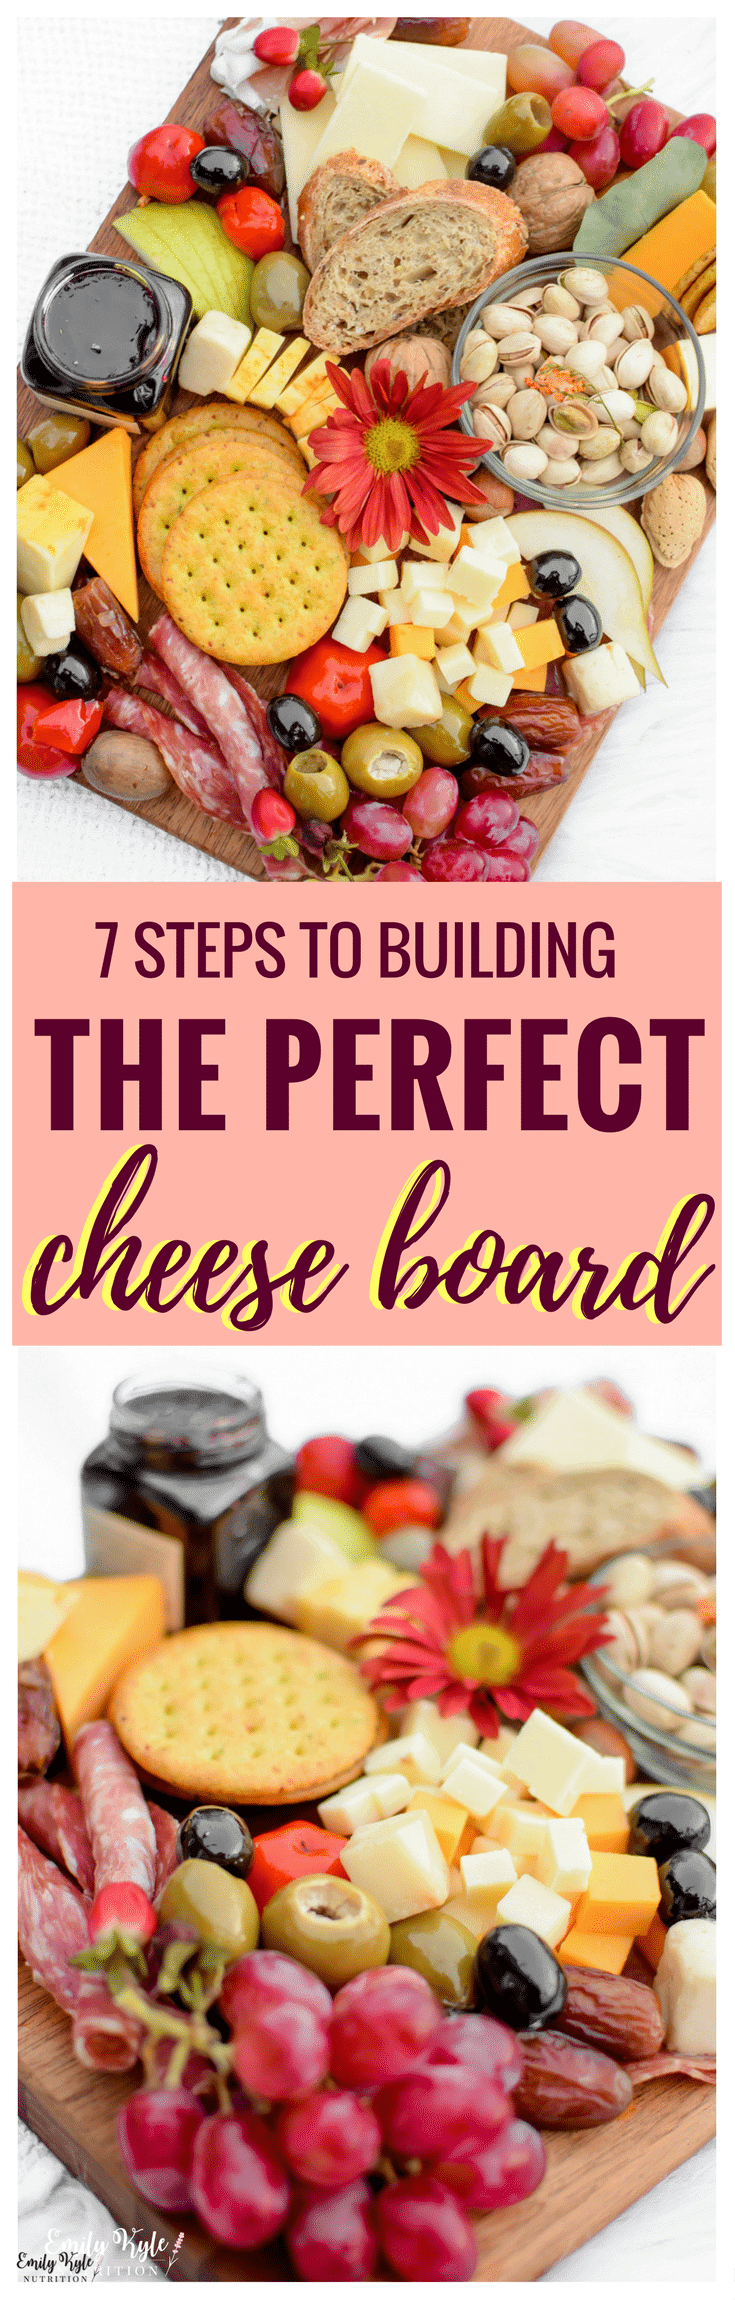 Create your own customized cheese board with a vegetarian option by following these 7 Steps to Building the Perfect Cheese Board! #ad #CheeseAddiction #IC